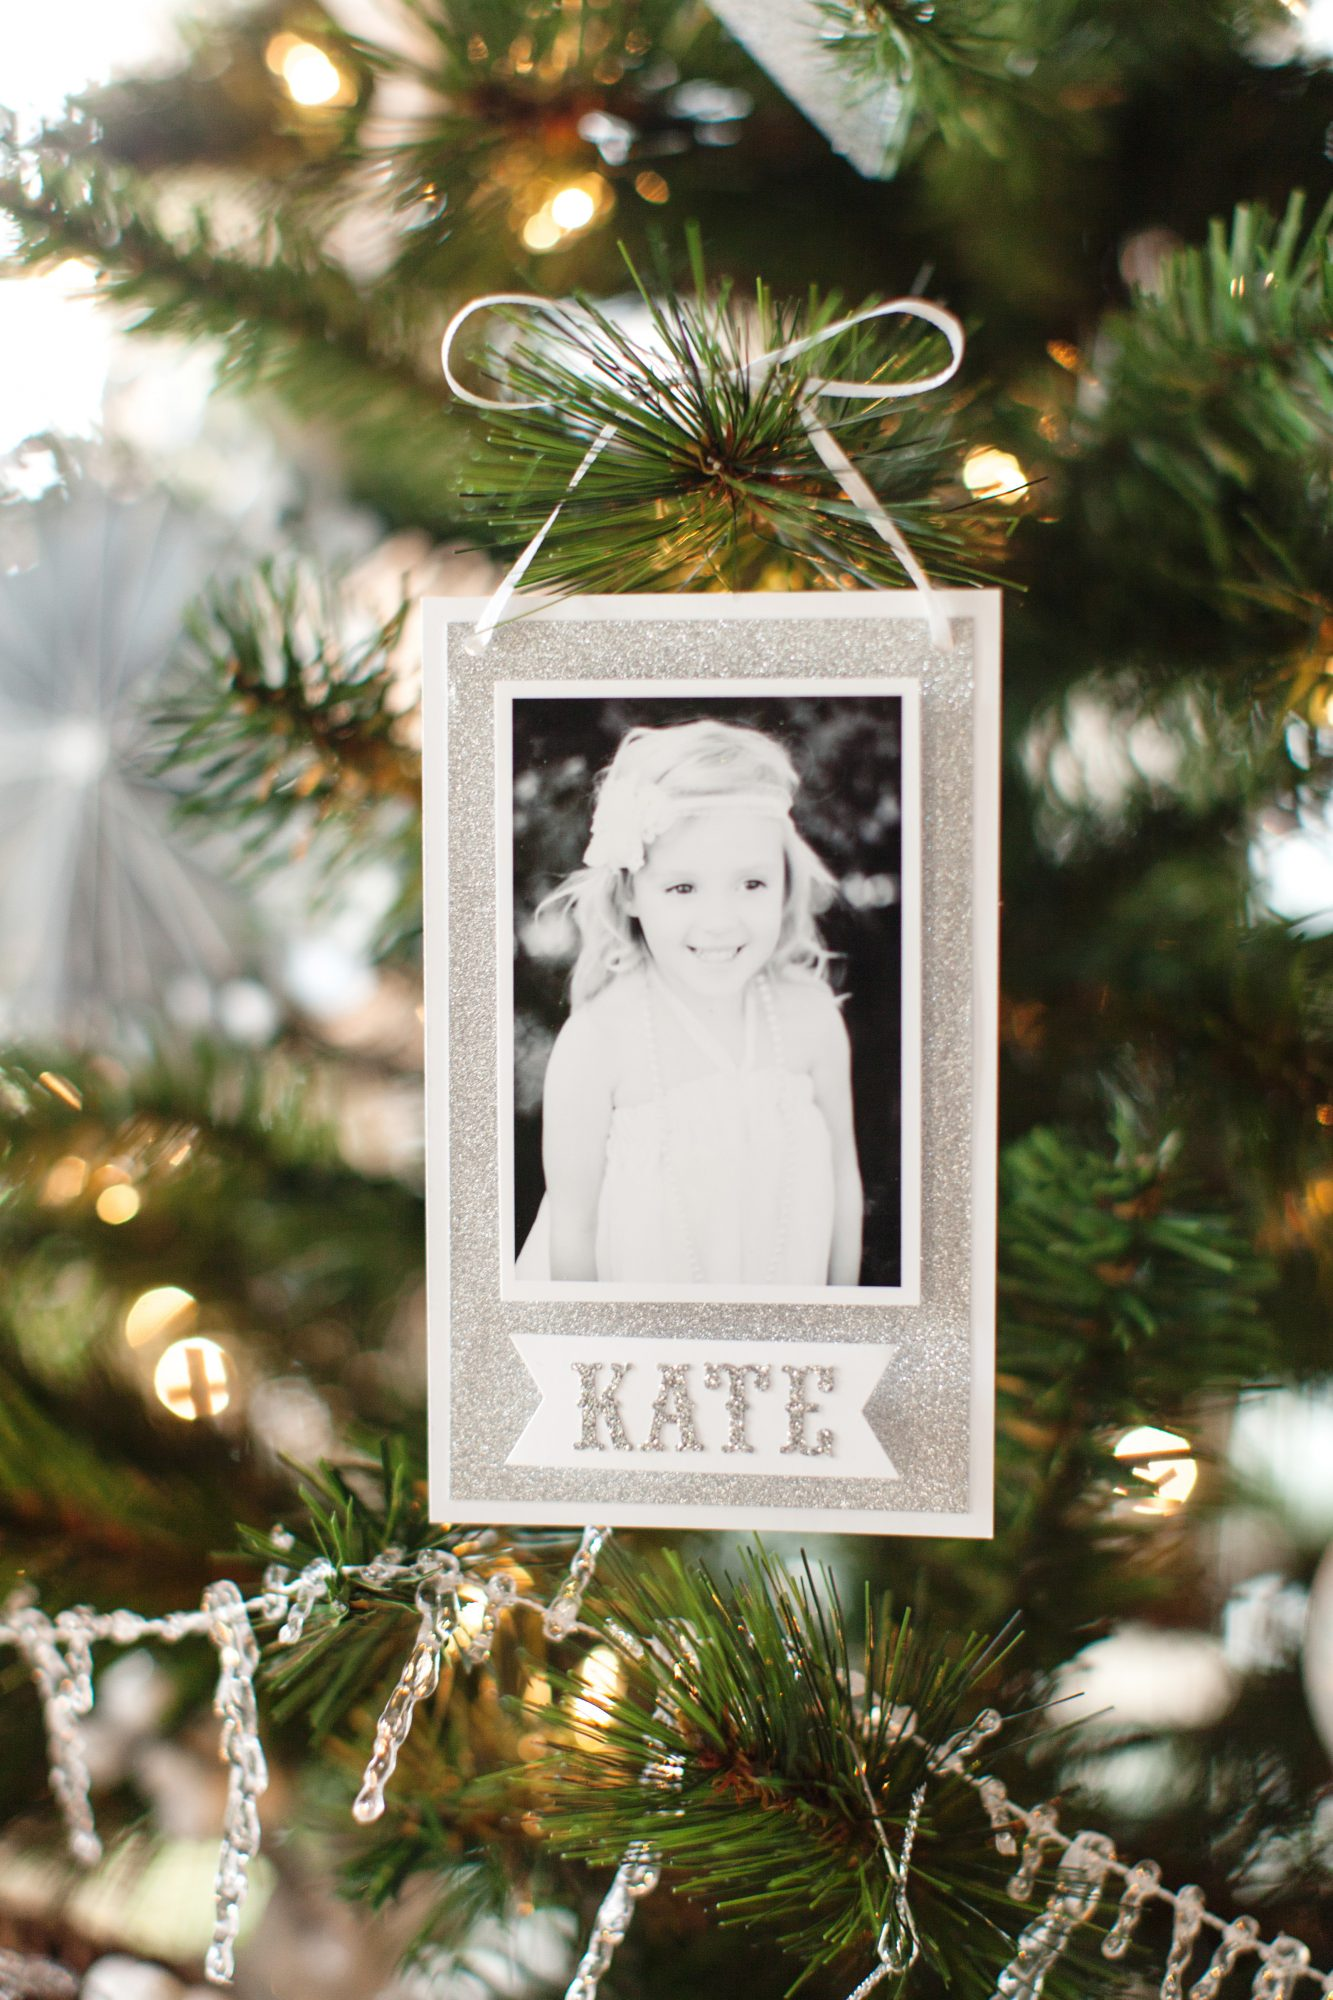 Christmas decorations to make yourself how to make an embroidered black and white photo ornament with christmas decorations to make yourself solutioingenieria Choice Image